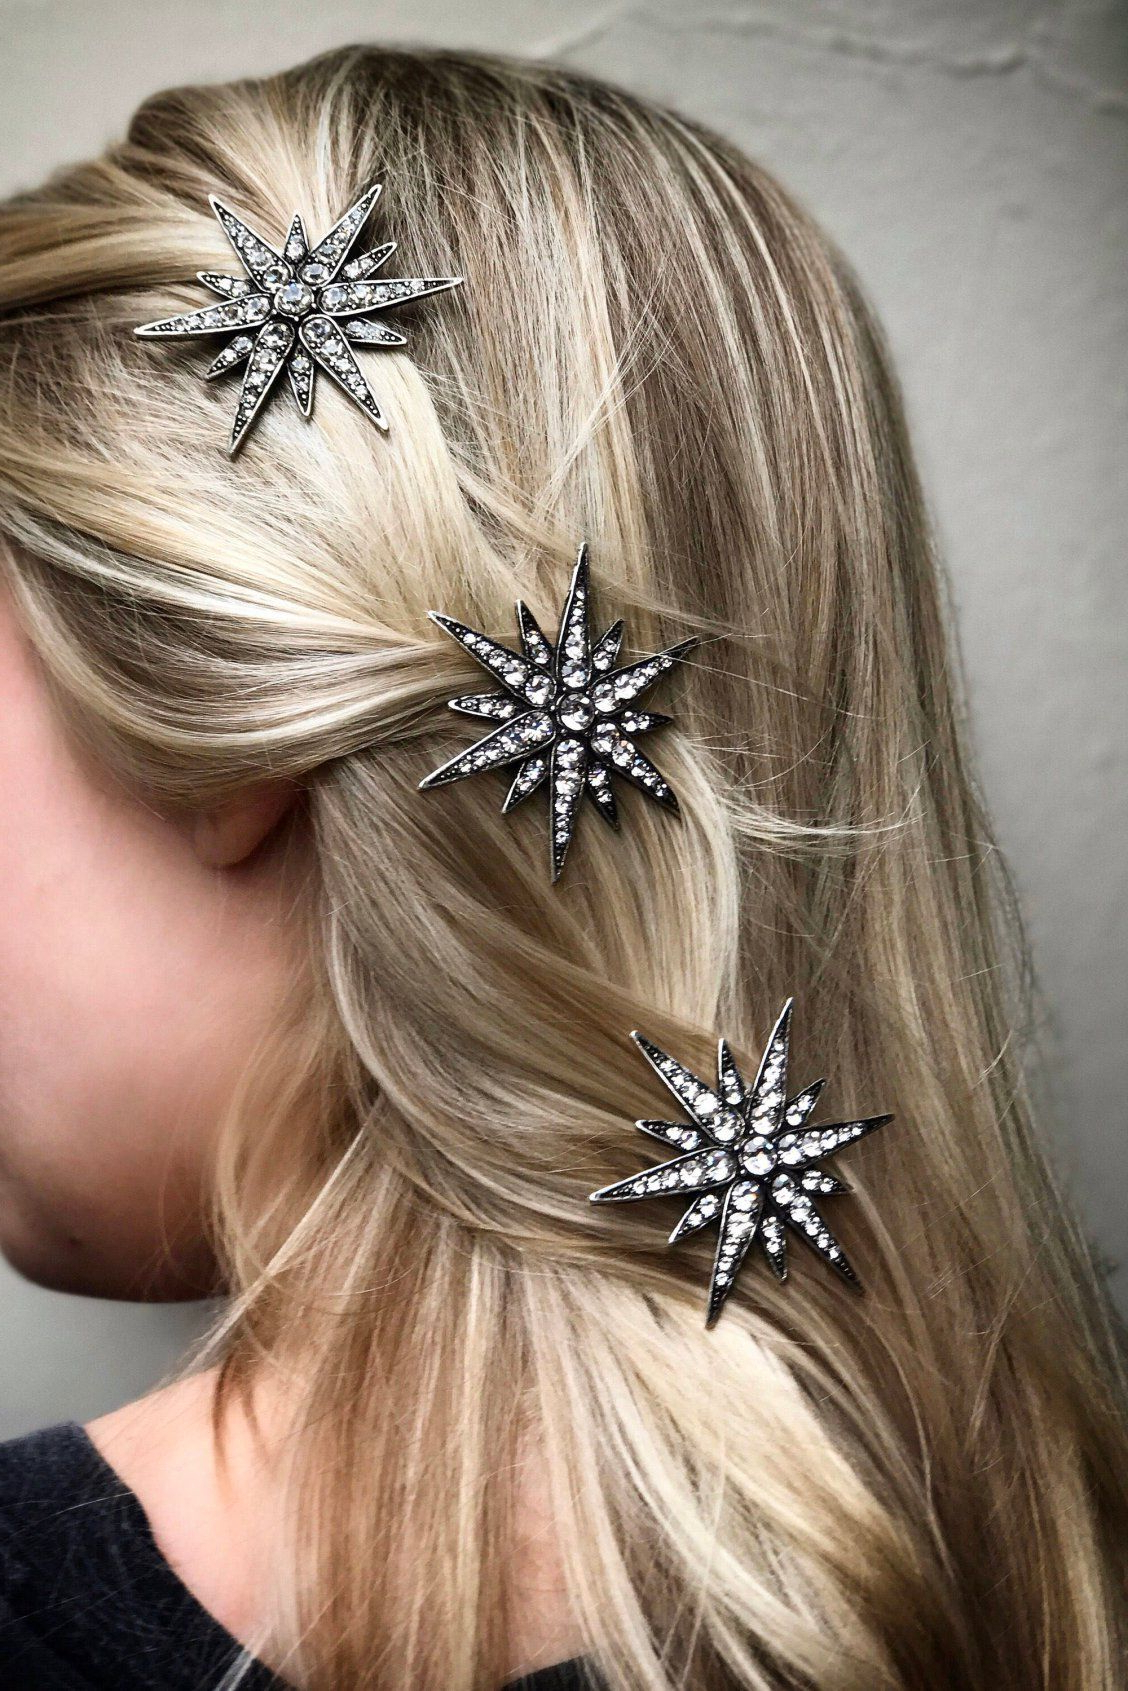 Latest Sleek Bridal Hairstyles With Floral Barrette For Starburst Hair Clip Barrette Star Crystal Rhinestone 'linx' In (View 2 of 20)